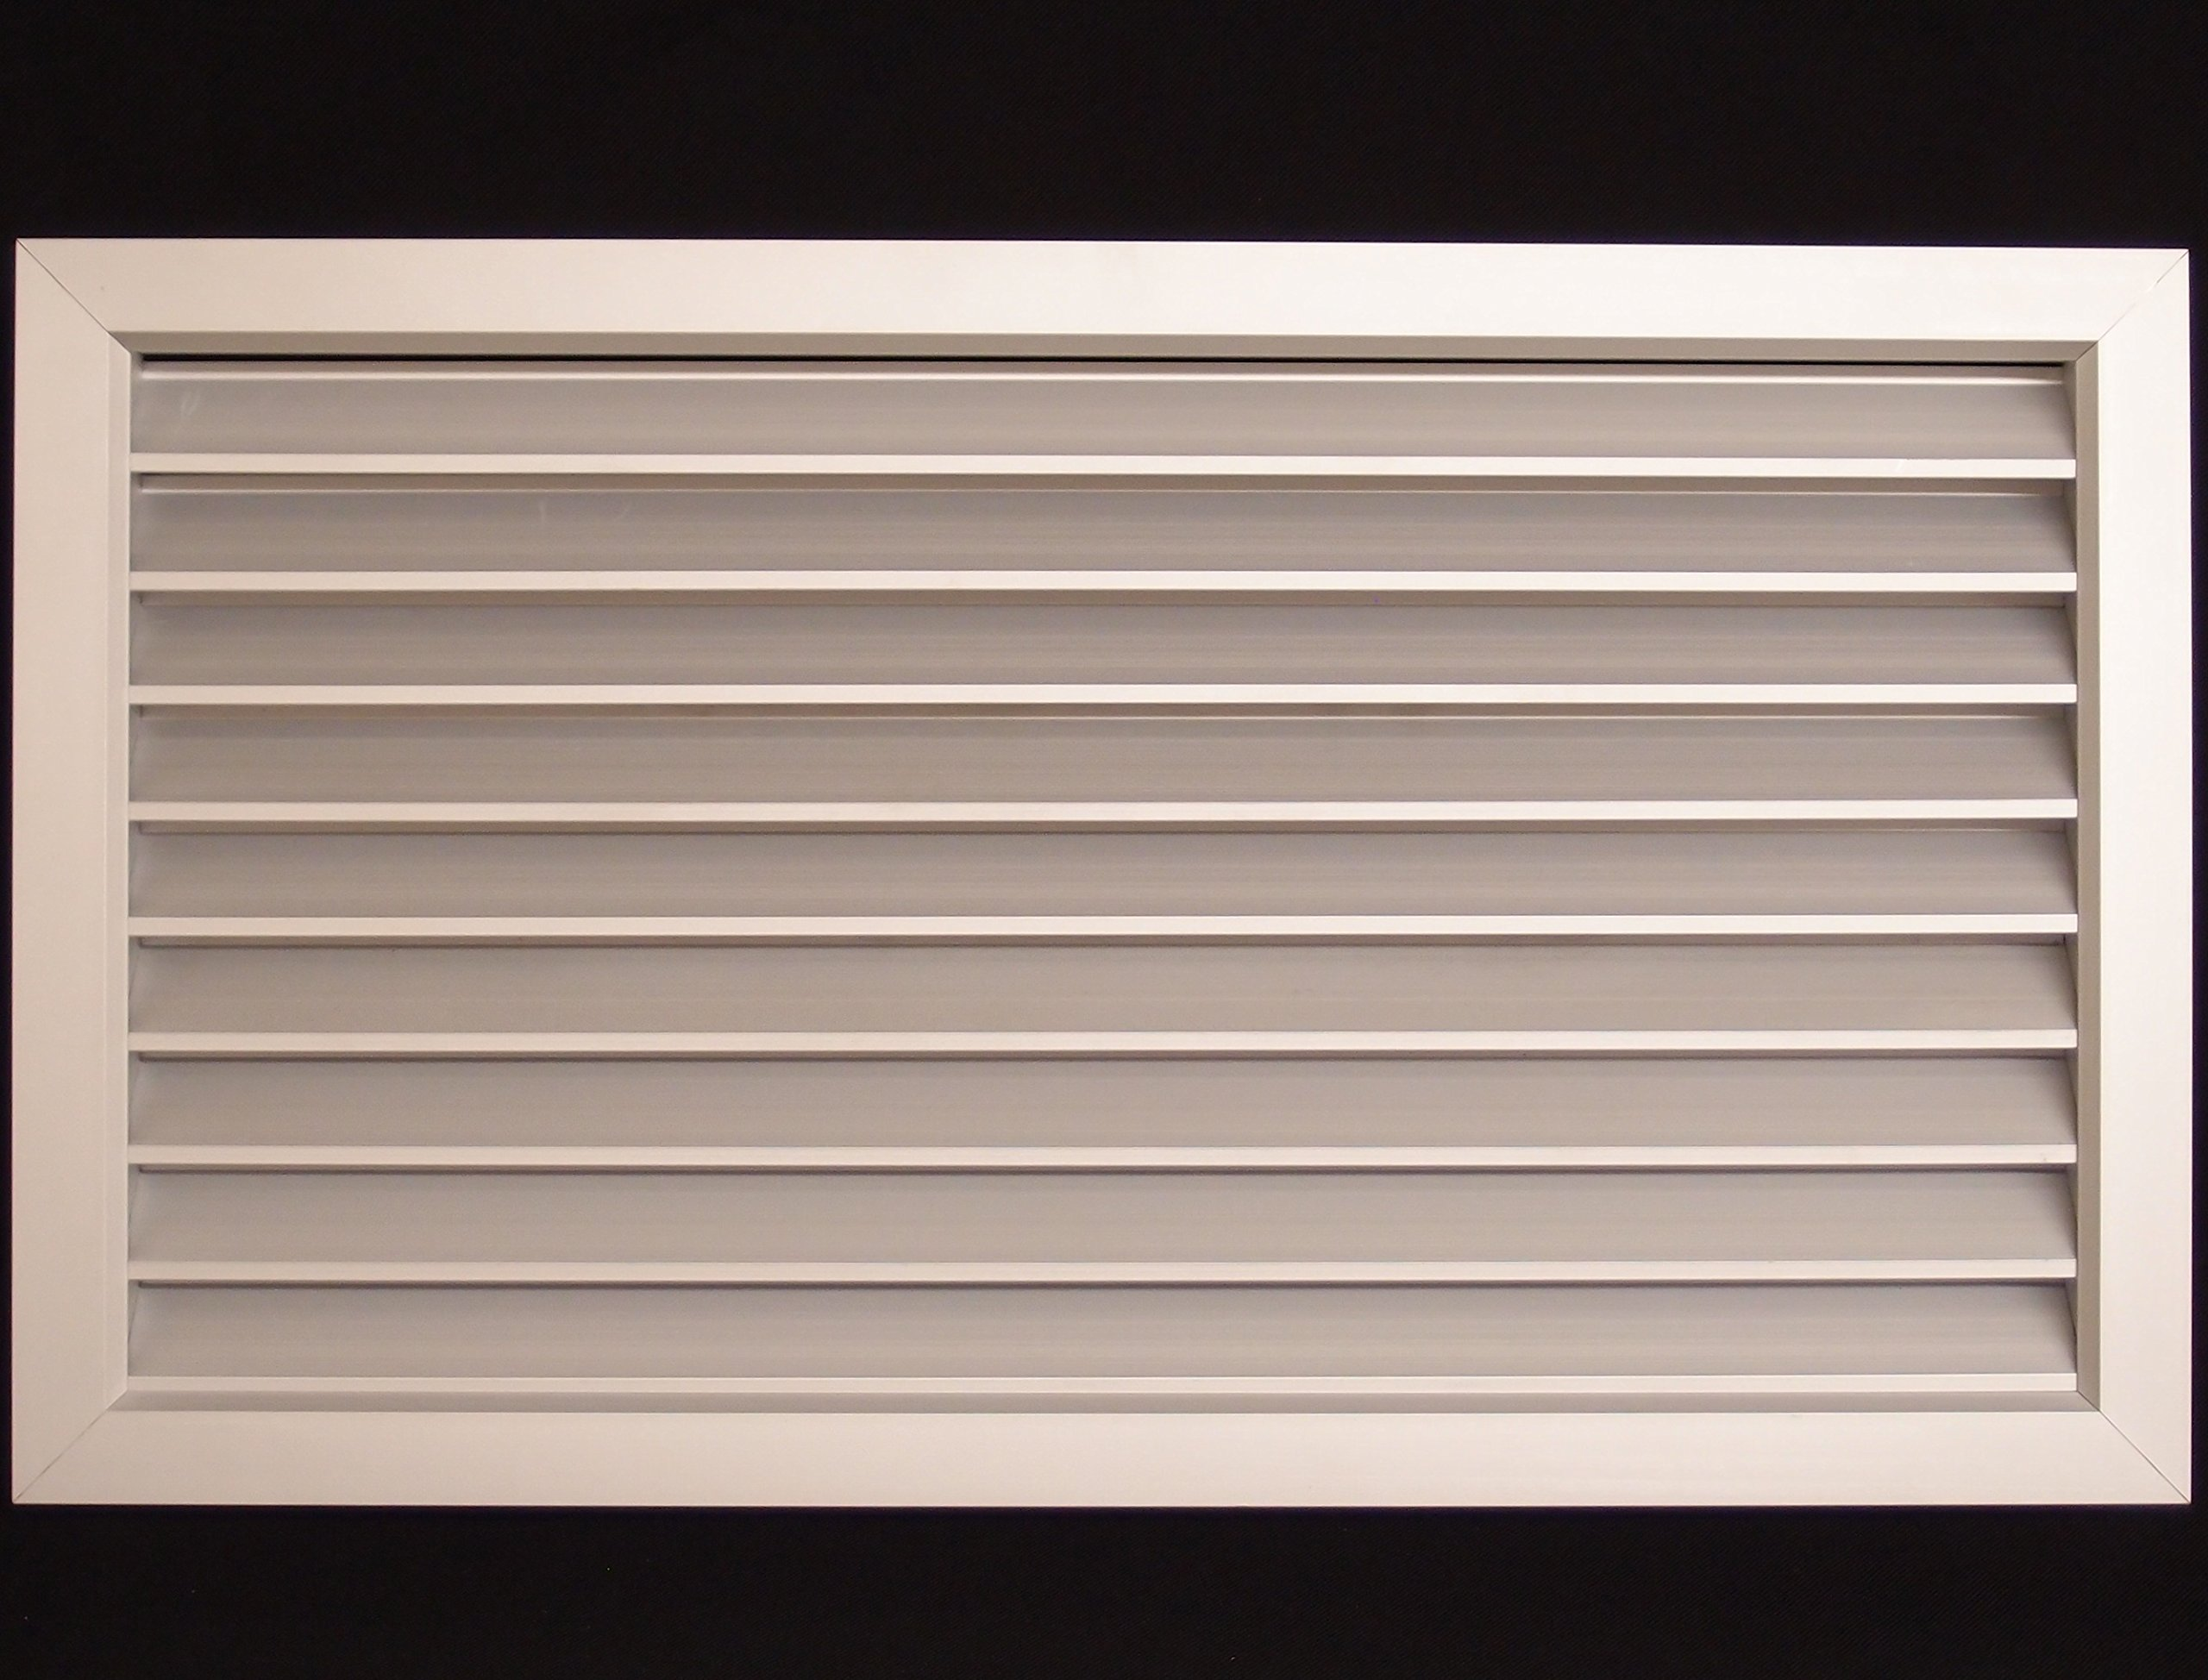 18''w X 18''h Aluminum Privacy Door HVAC Air Grille - ''V'' Shaped Louvers Enusre 100% View Block - Supply or Return